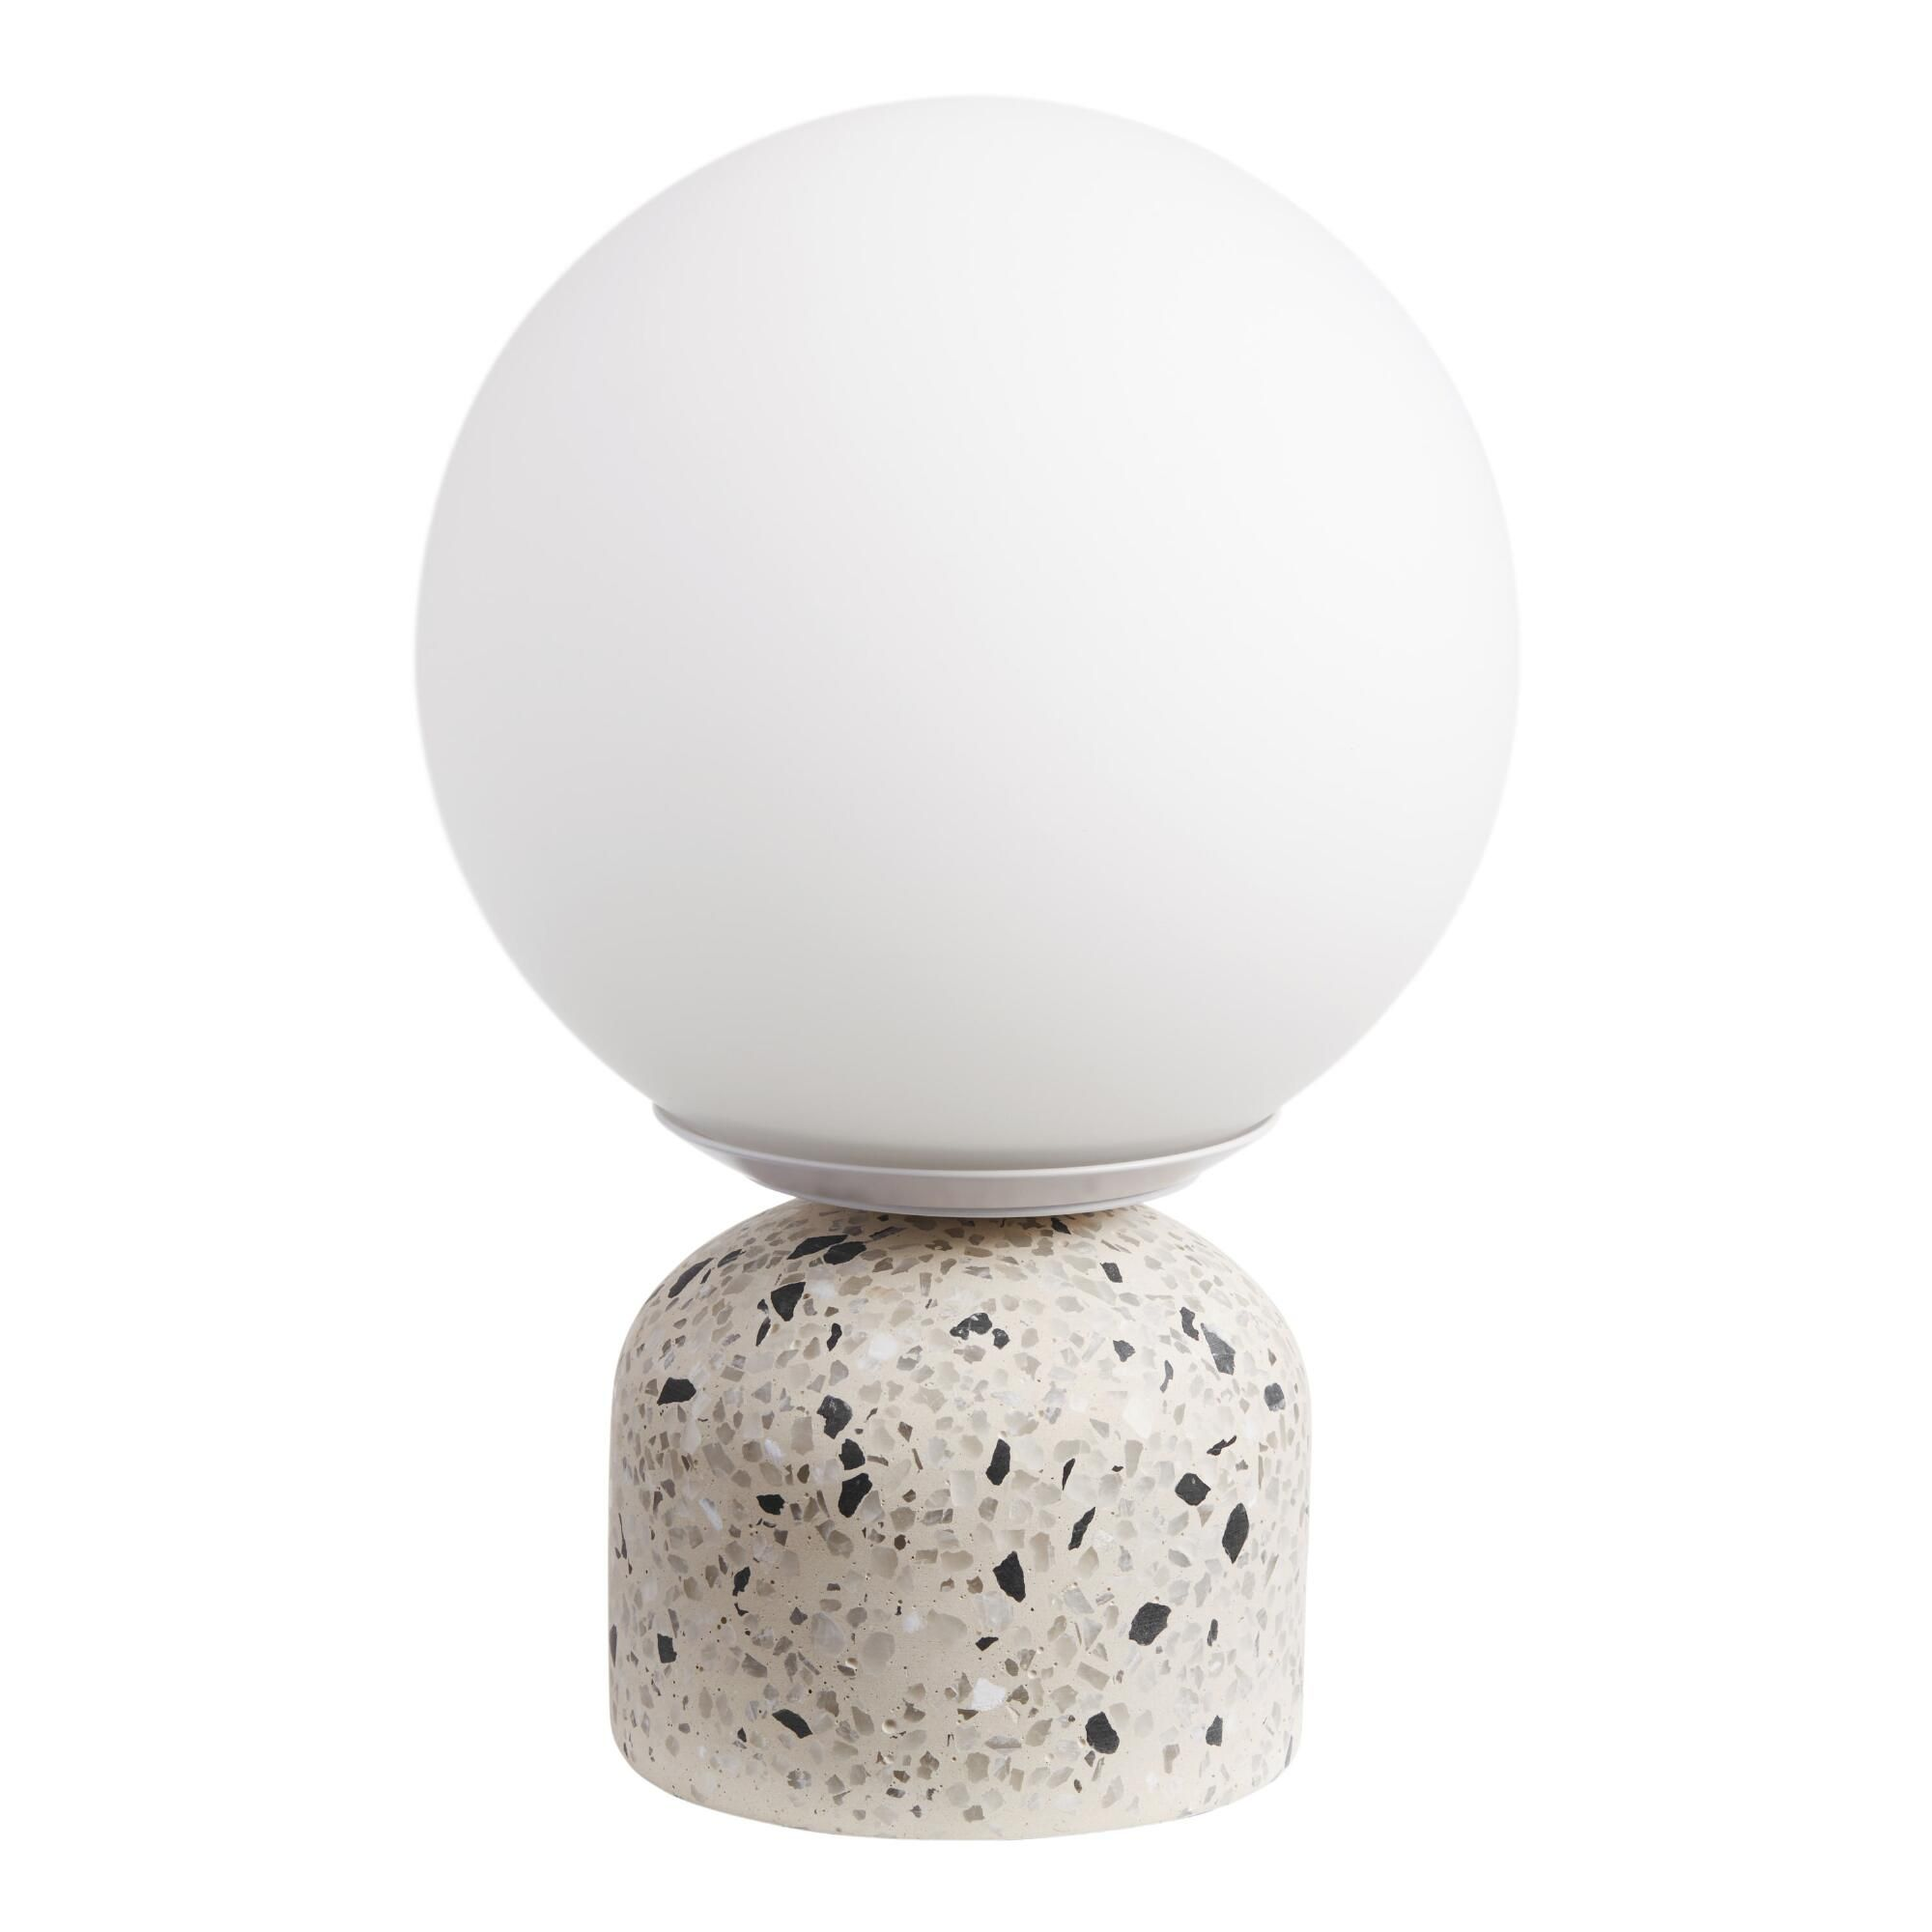 9395c1a384d83a97aa3d07b4f2986208 - Better Homes And Gardens Frosted Glass Globe Lights